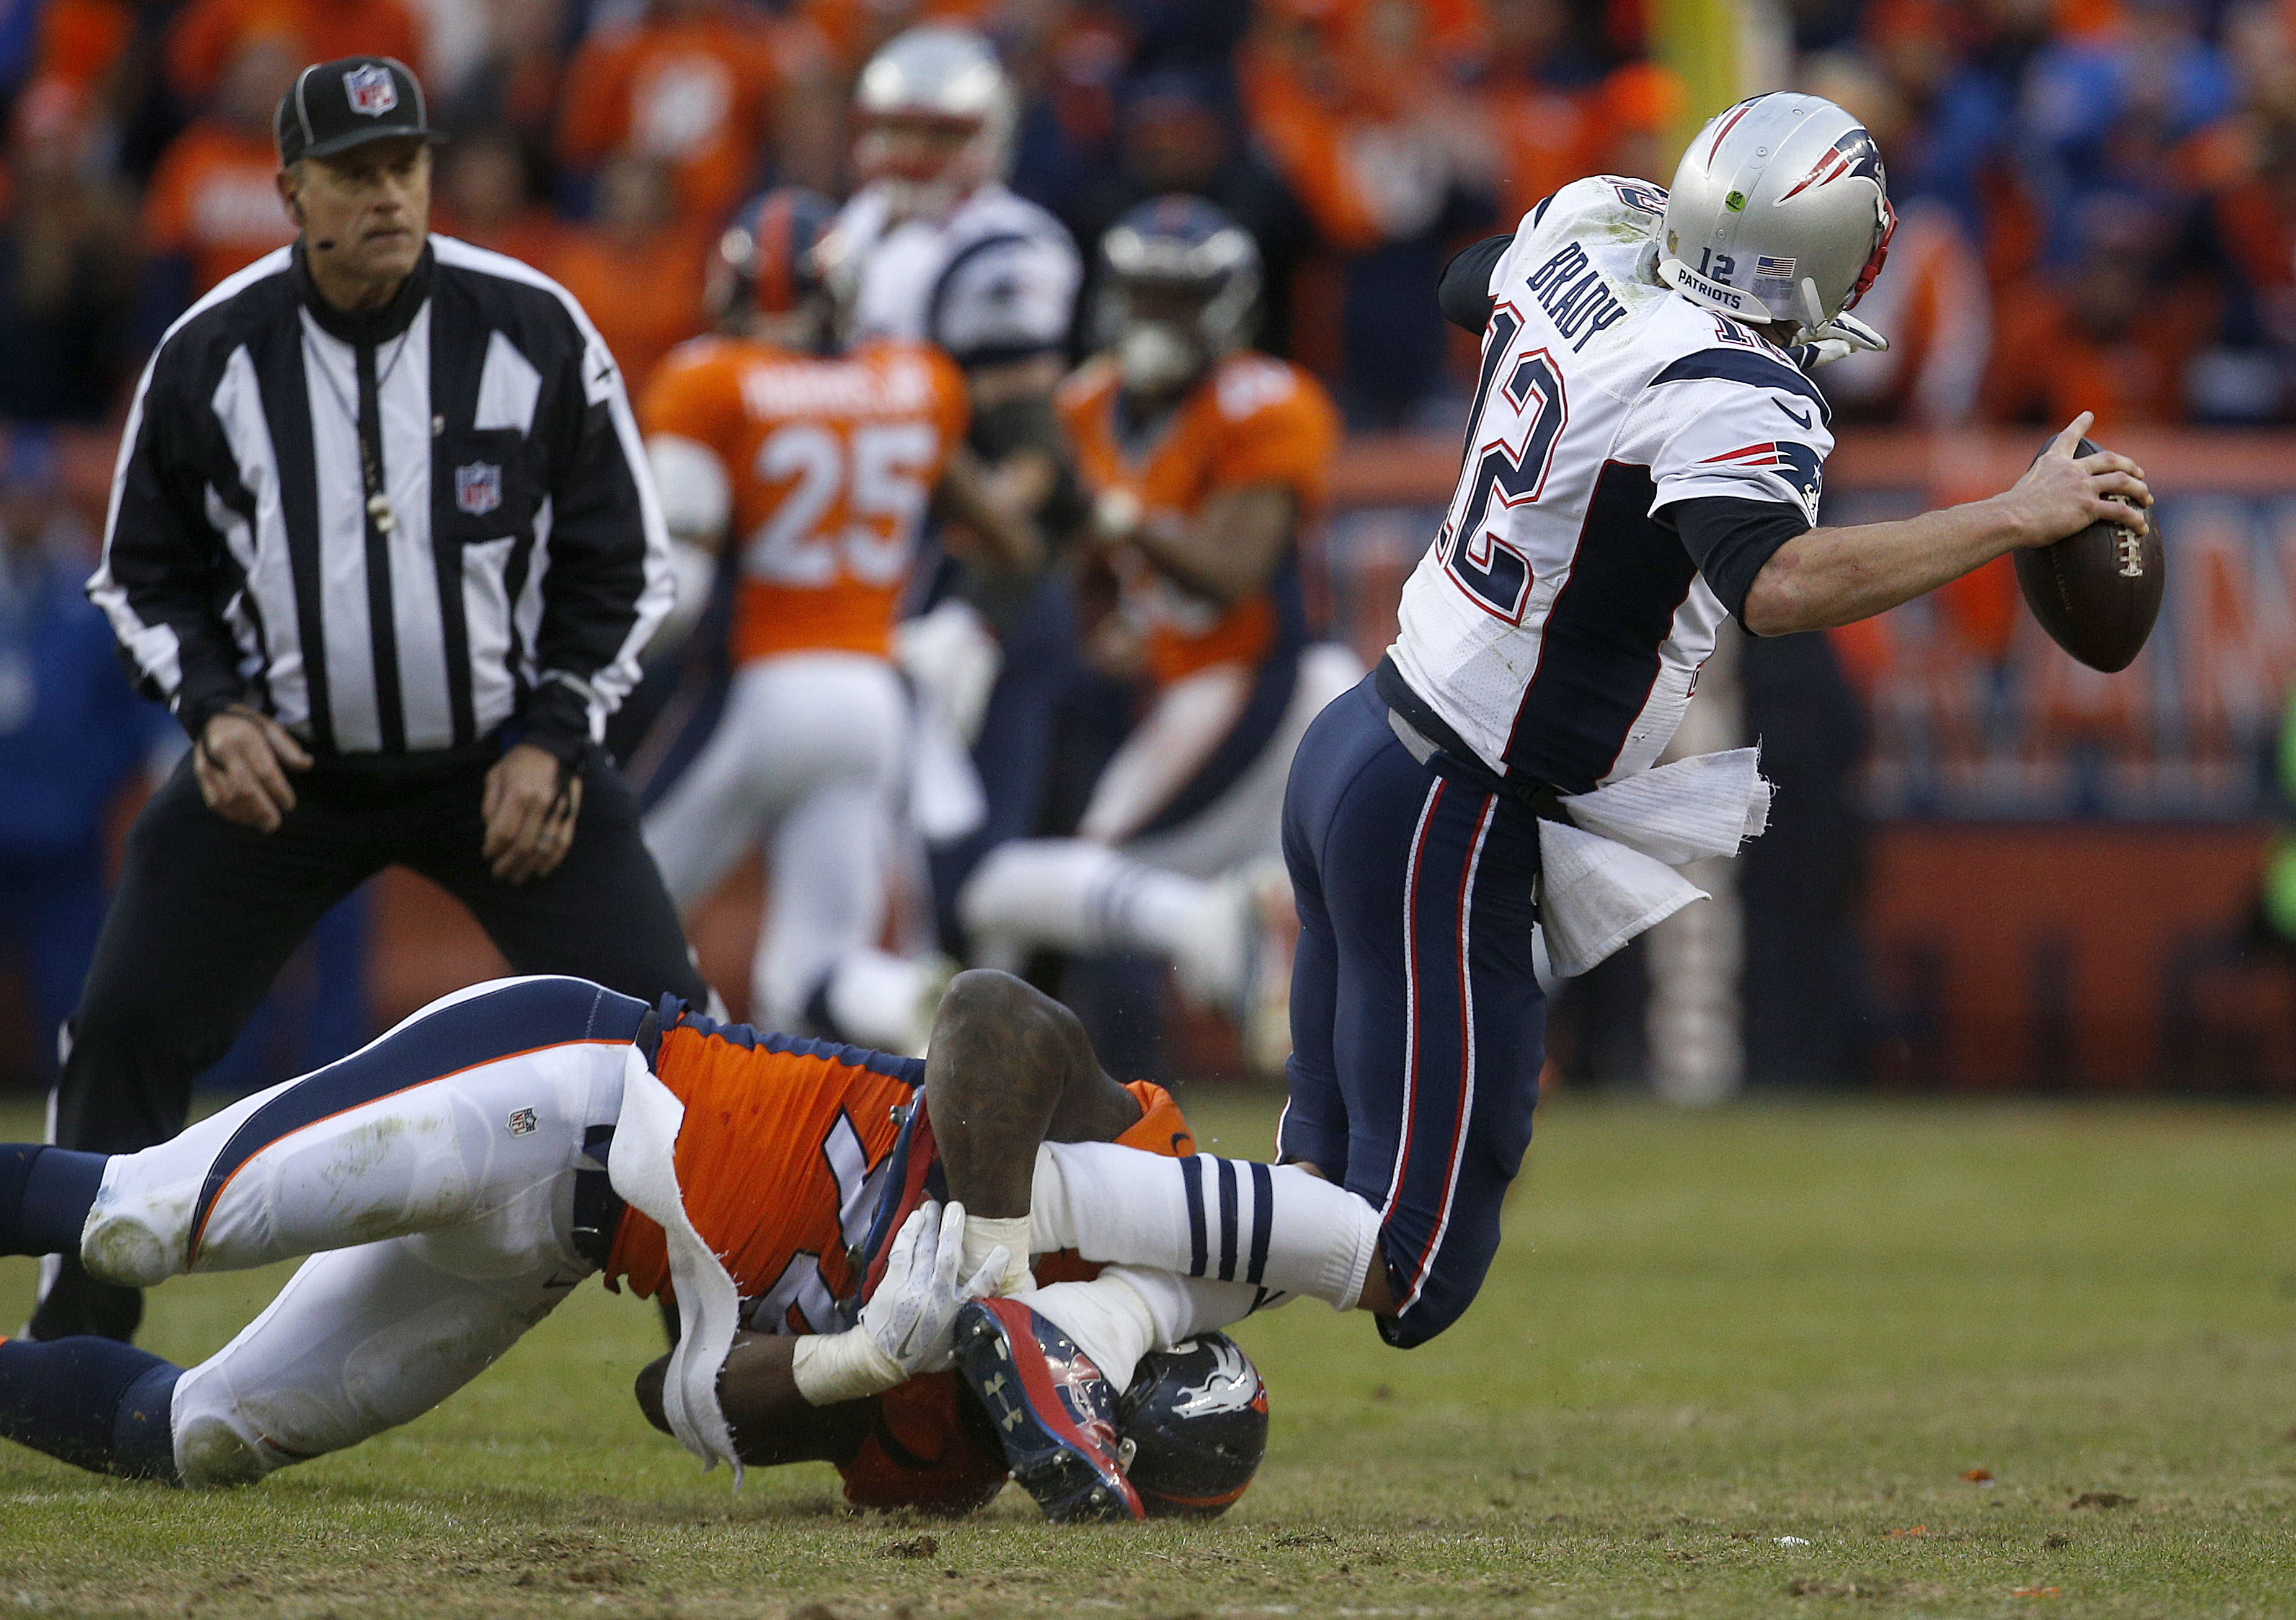 New England Patriots quarterback Tom Brady throws the ball as he is brought down by Denver Broncos outside linebacker DeMarcus Ware during the second half of the AFC Championship game between the Denver Broncos and the New England Patriots, Sunday, Jan. 2